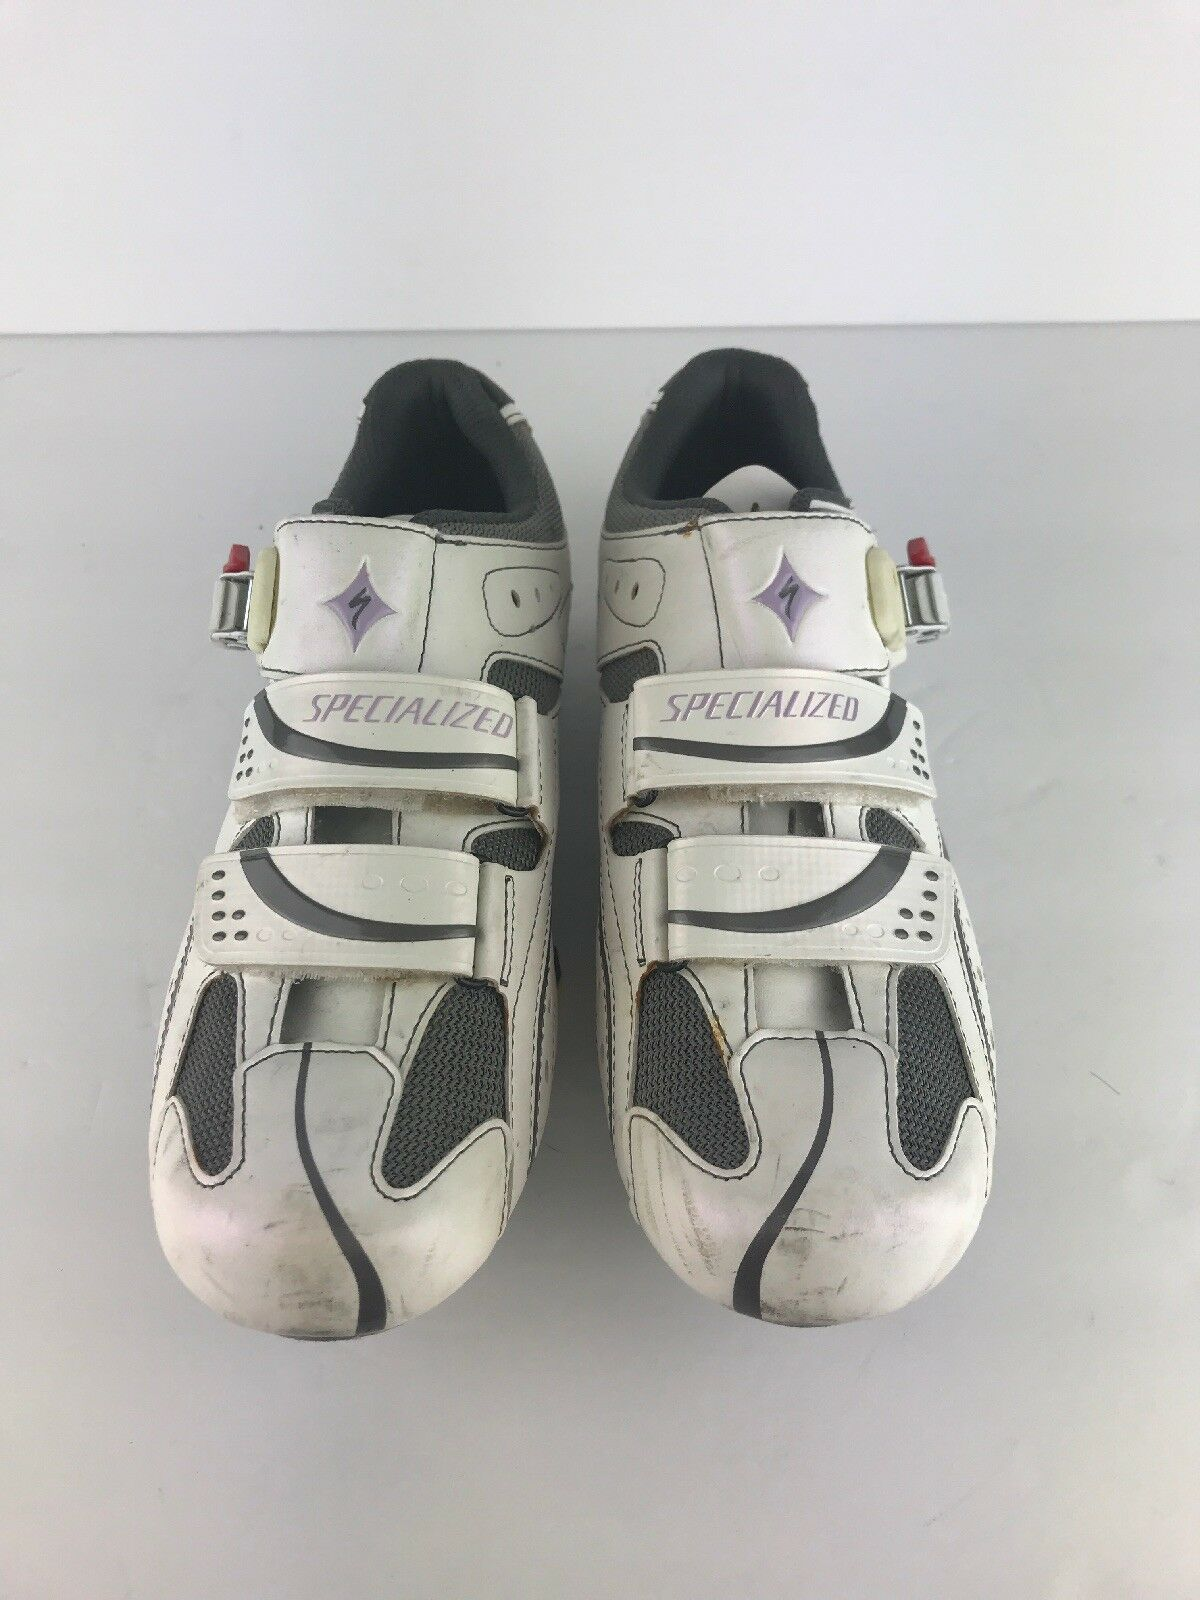 Specialized BG Spirita White Leather Road Bike Cycling shoes US 9 GREAT